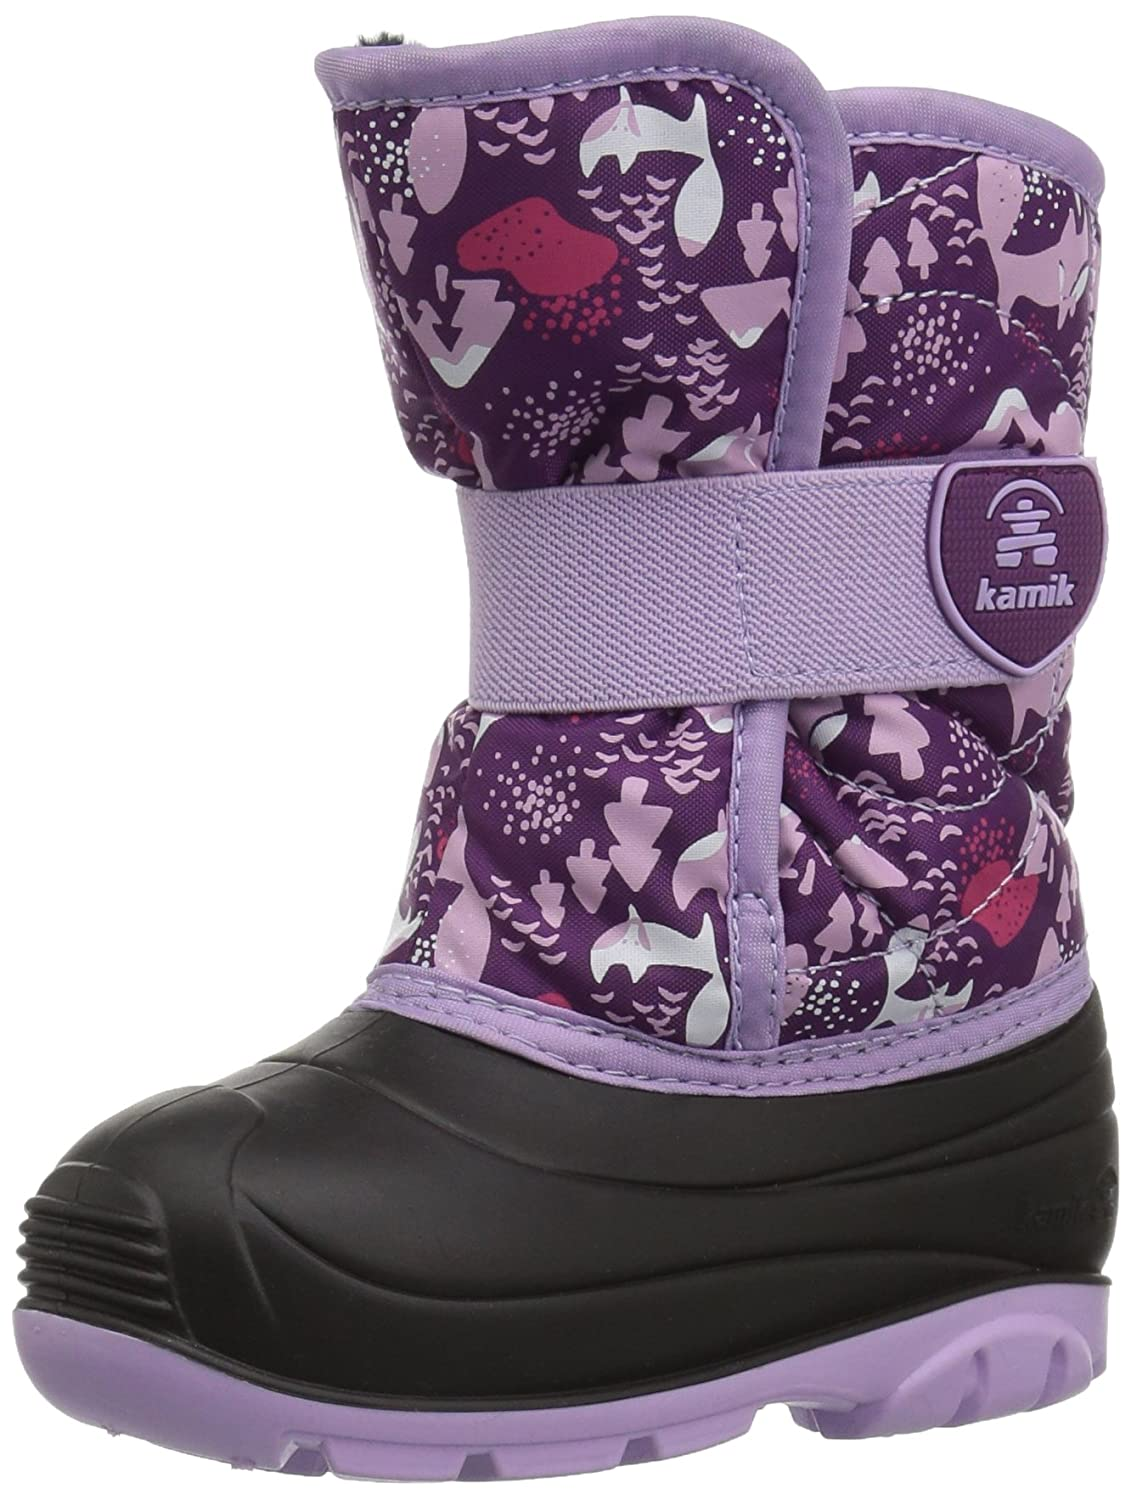 Kamik Kids' Snowbug4 Snow Boot,